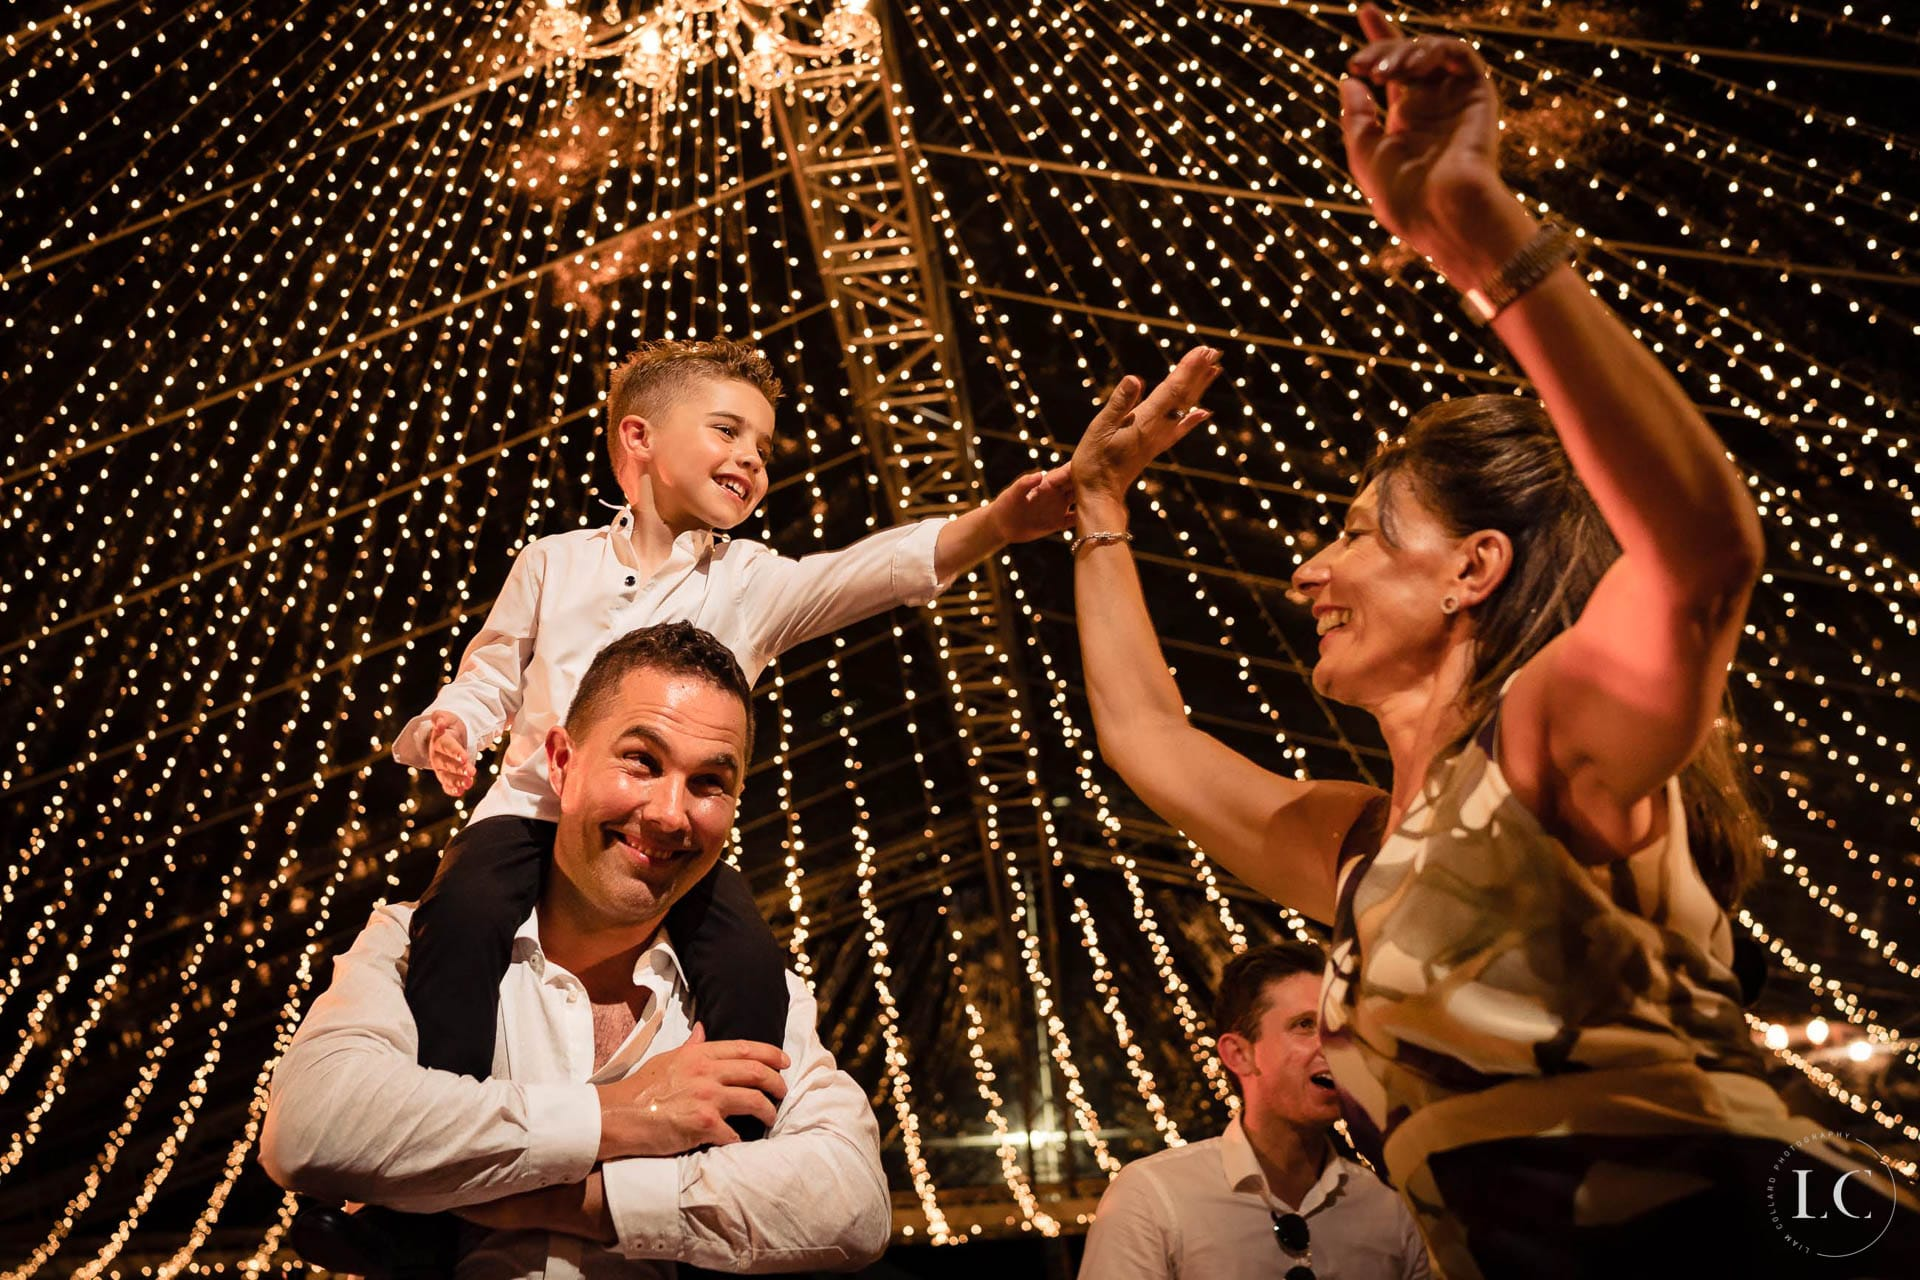 Child on man's shoulders at wedding